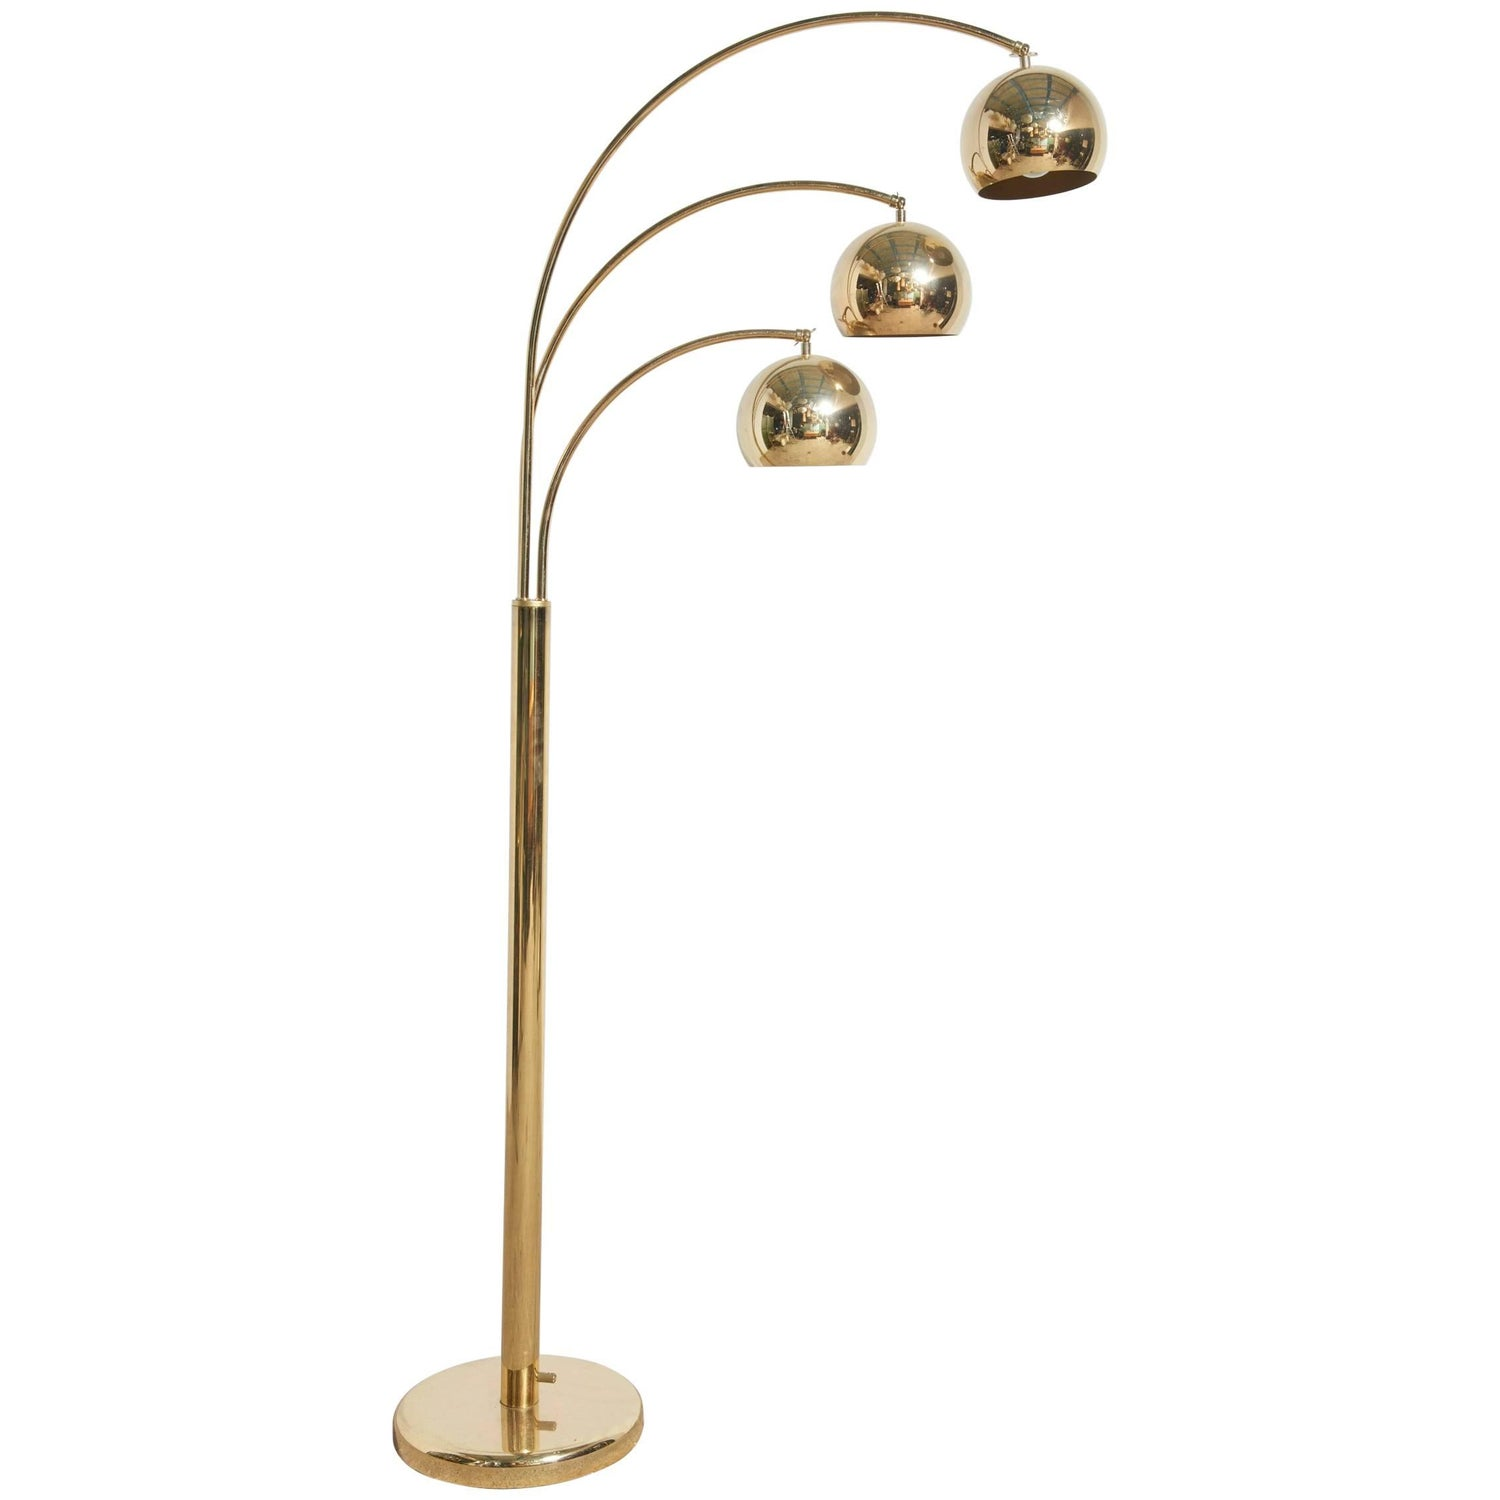 Vintage brass and marble three arm arc floor lamp at 1stdibs - Brass Arc Floor Lamp With Three Adjustable Arms By Goffredo Reggiani Italy